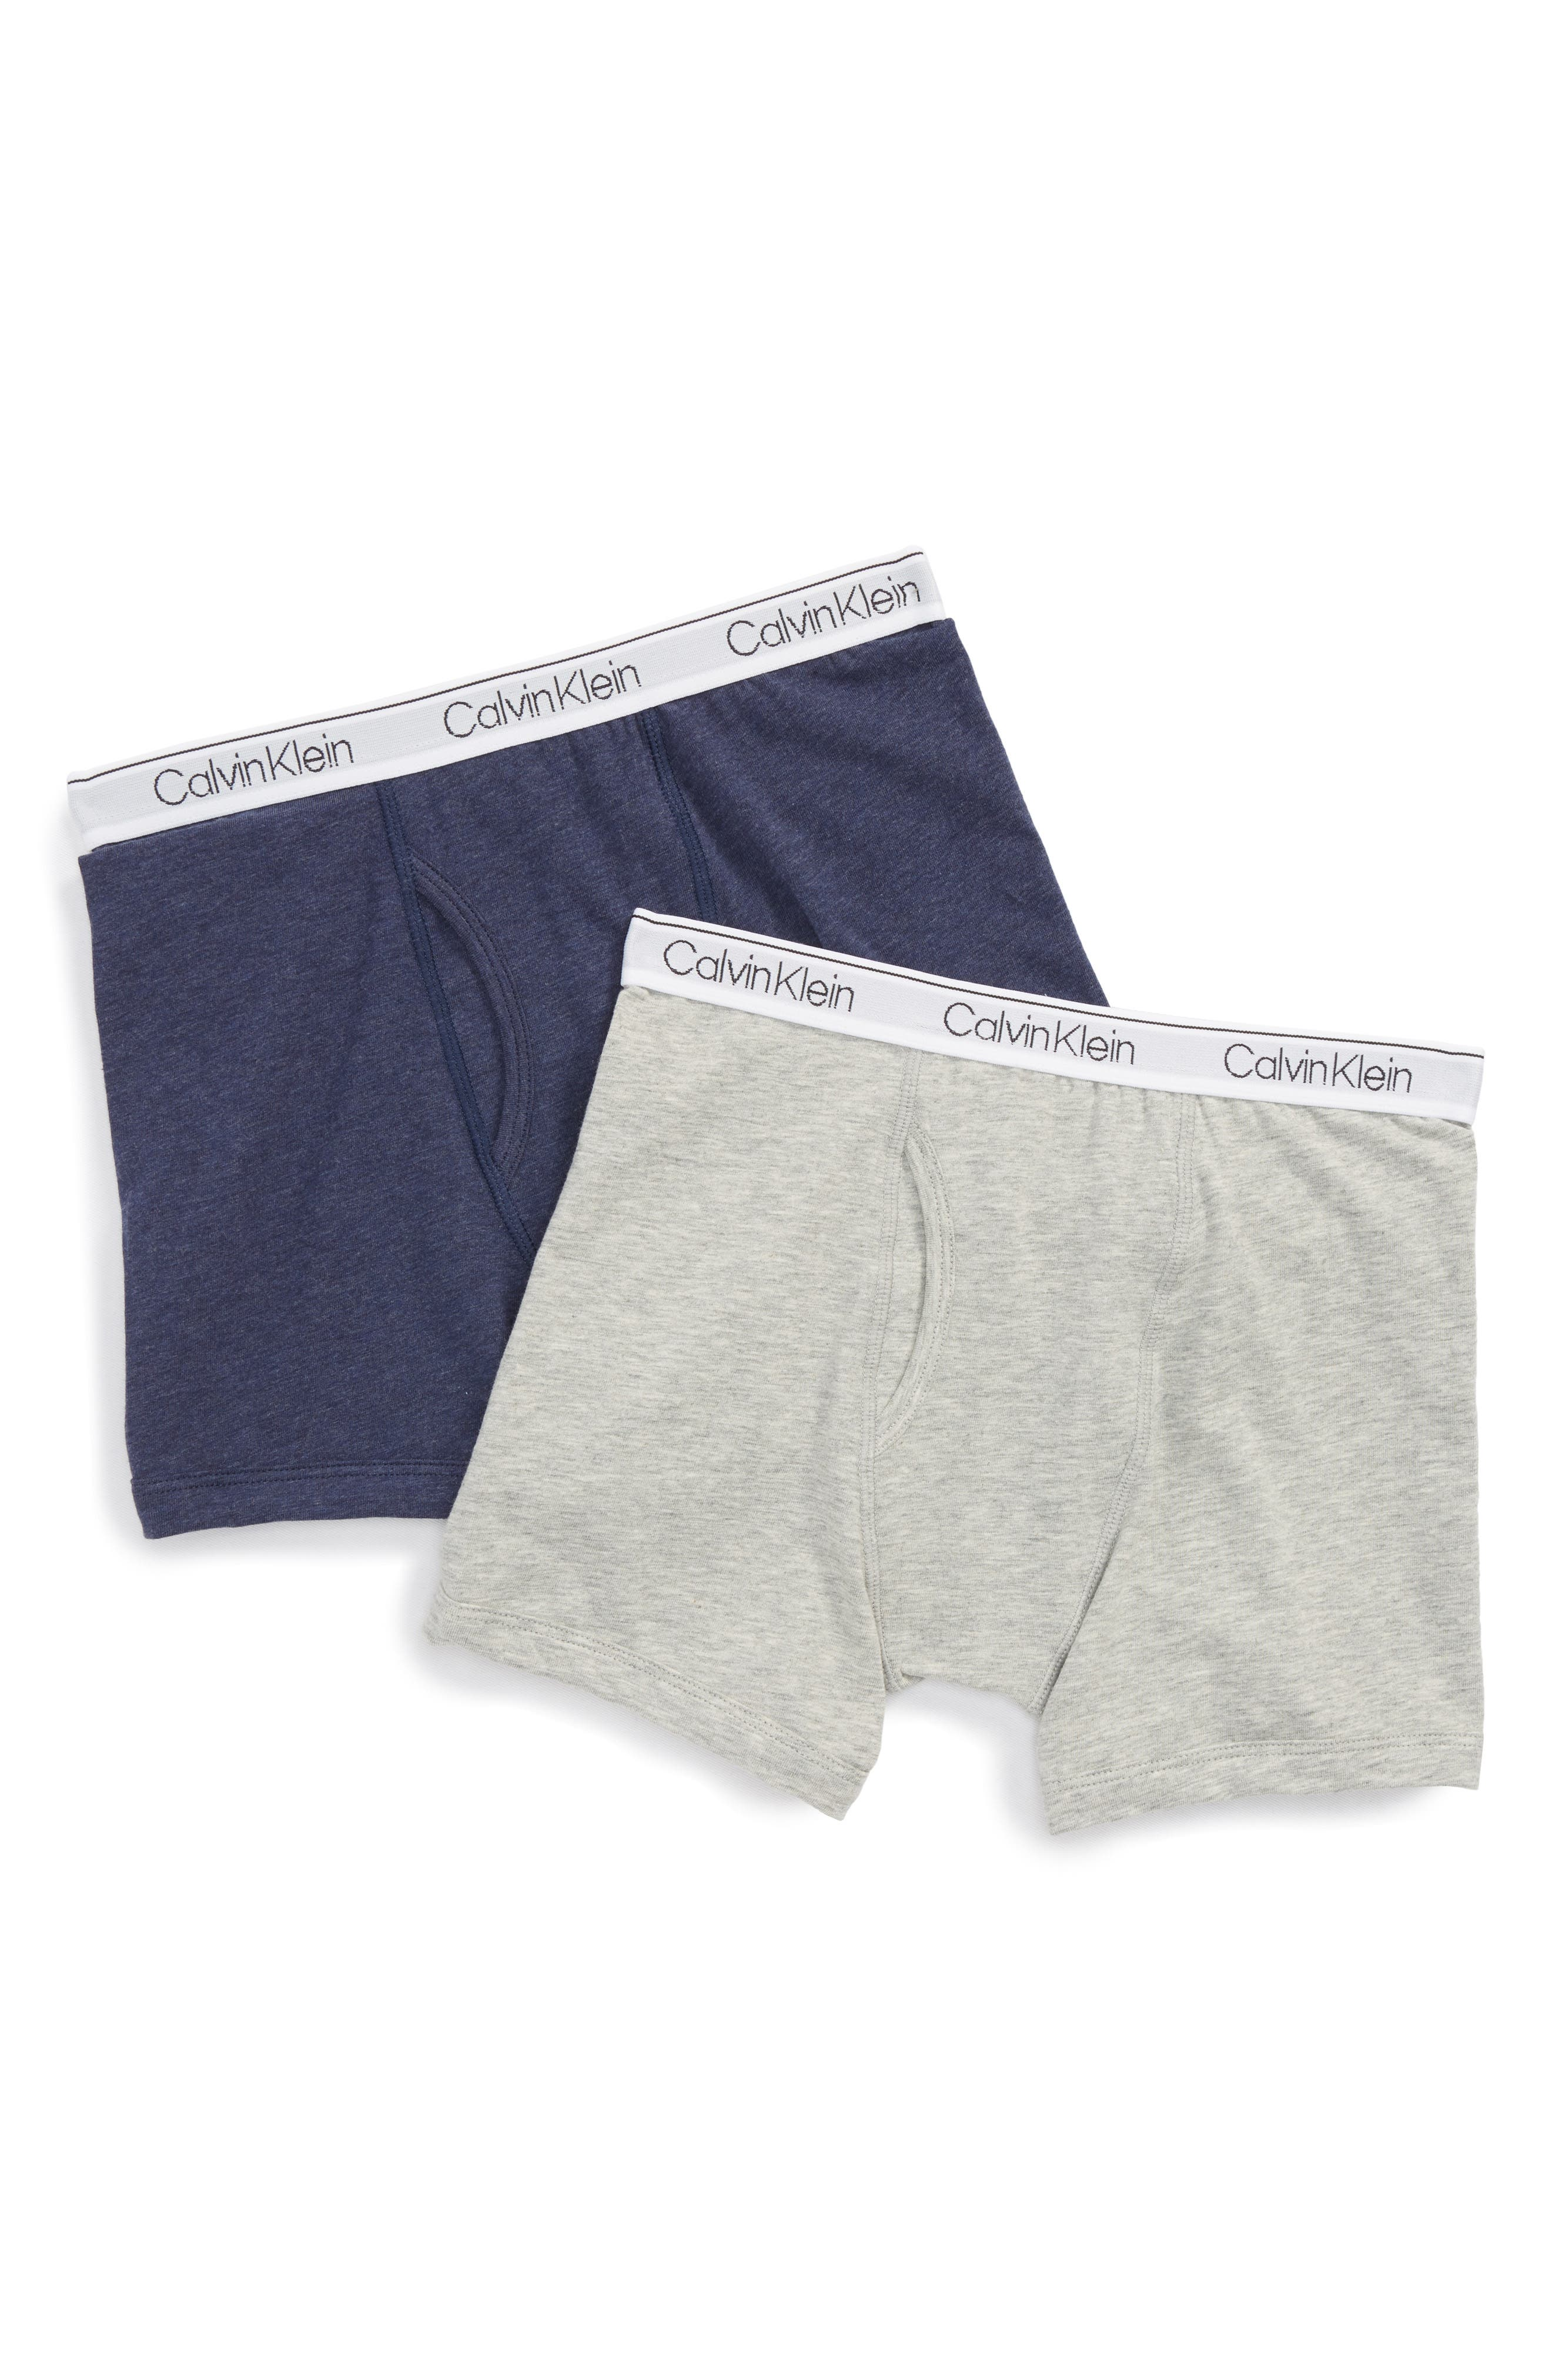 2-Pack Modern Boxer Briefs,                         Main,                         color, Heather Grey/Heather Blue